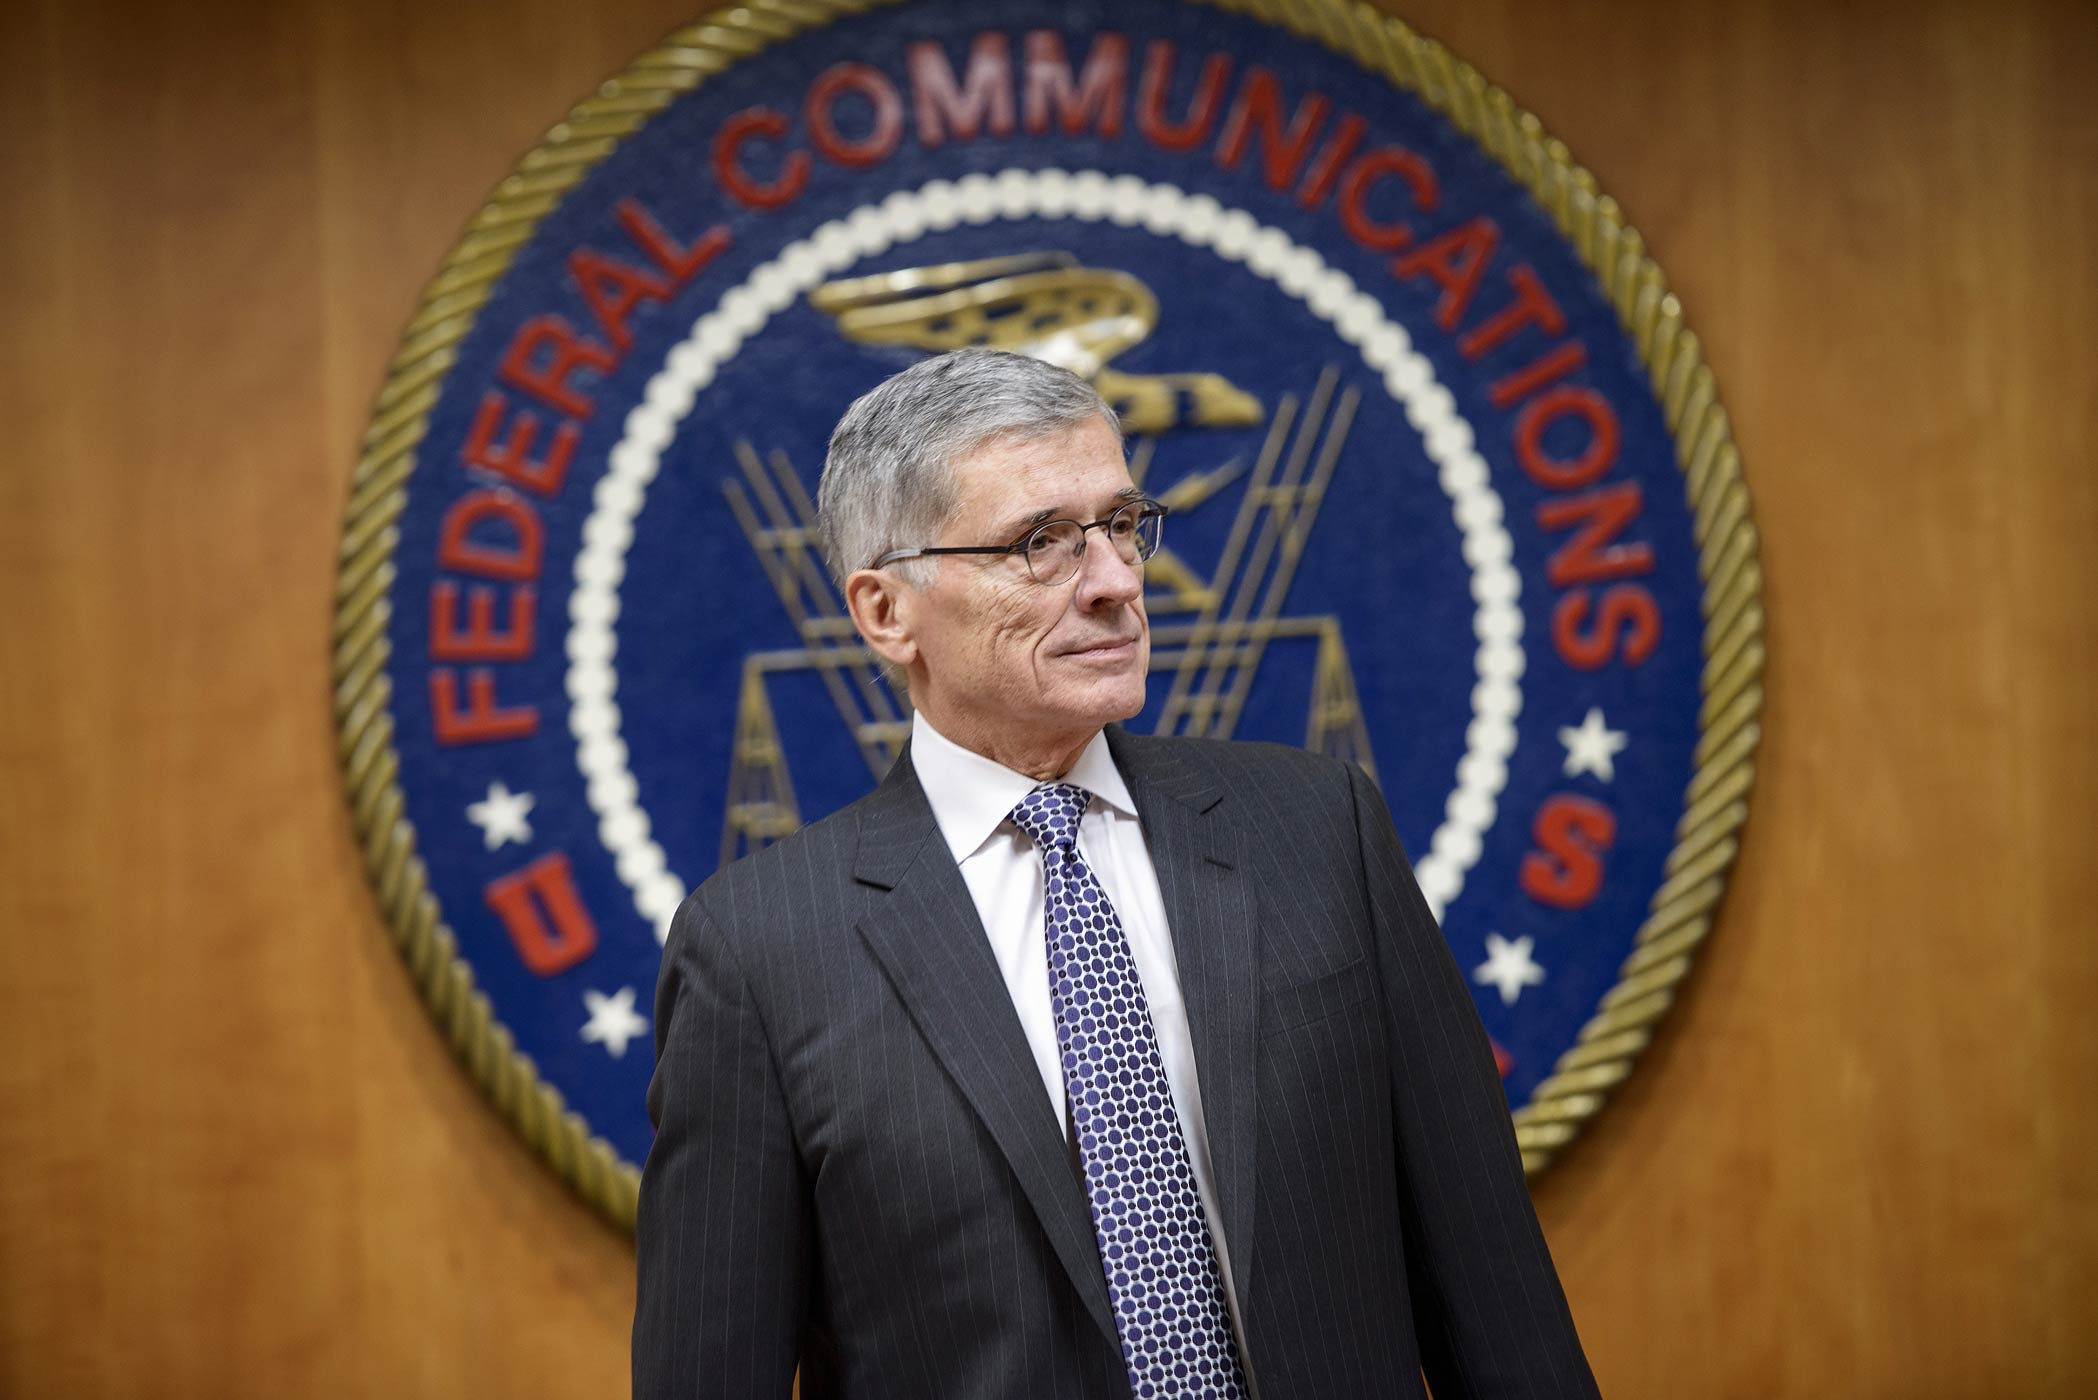 Federal Communication Commission Chairman Tom Wheeler waits for a hearing at the FCC on Dec. 11, 2014 in Washington, DC.